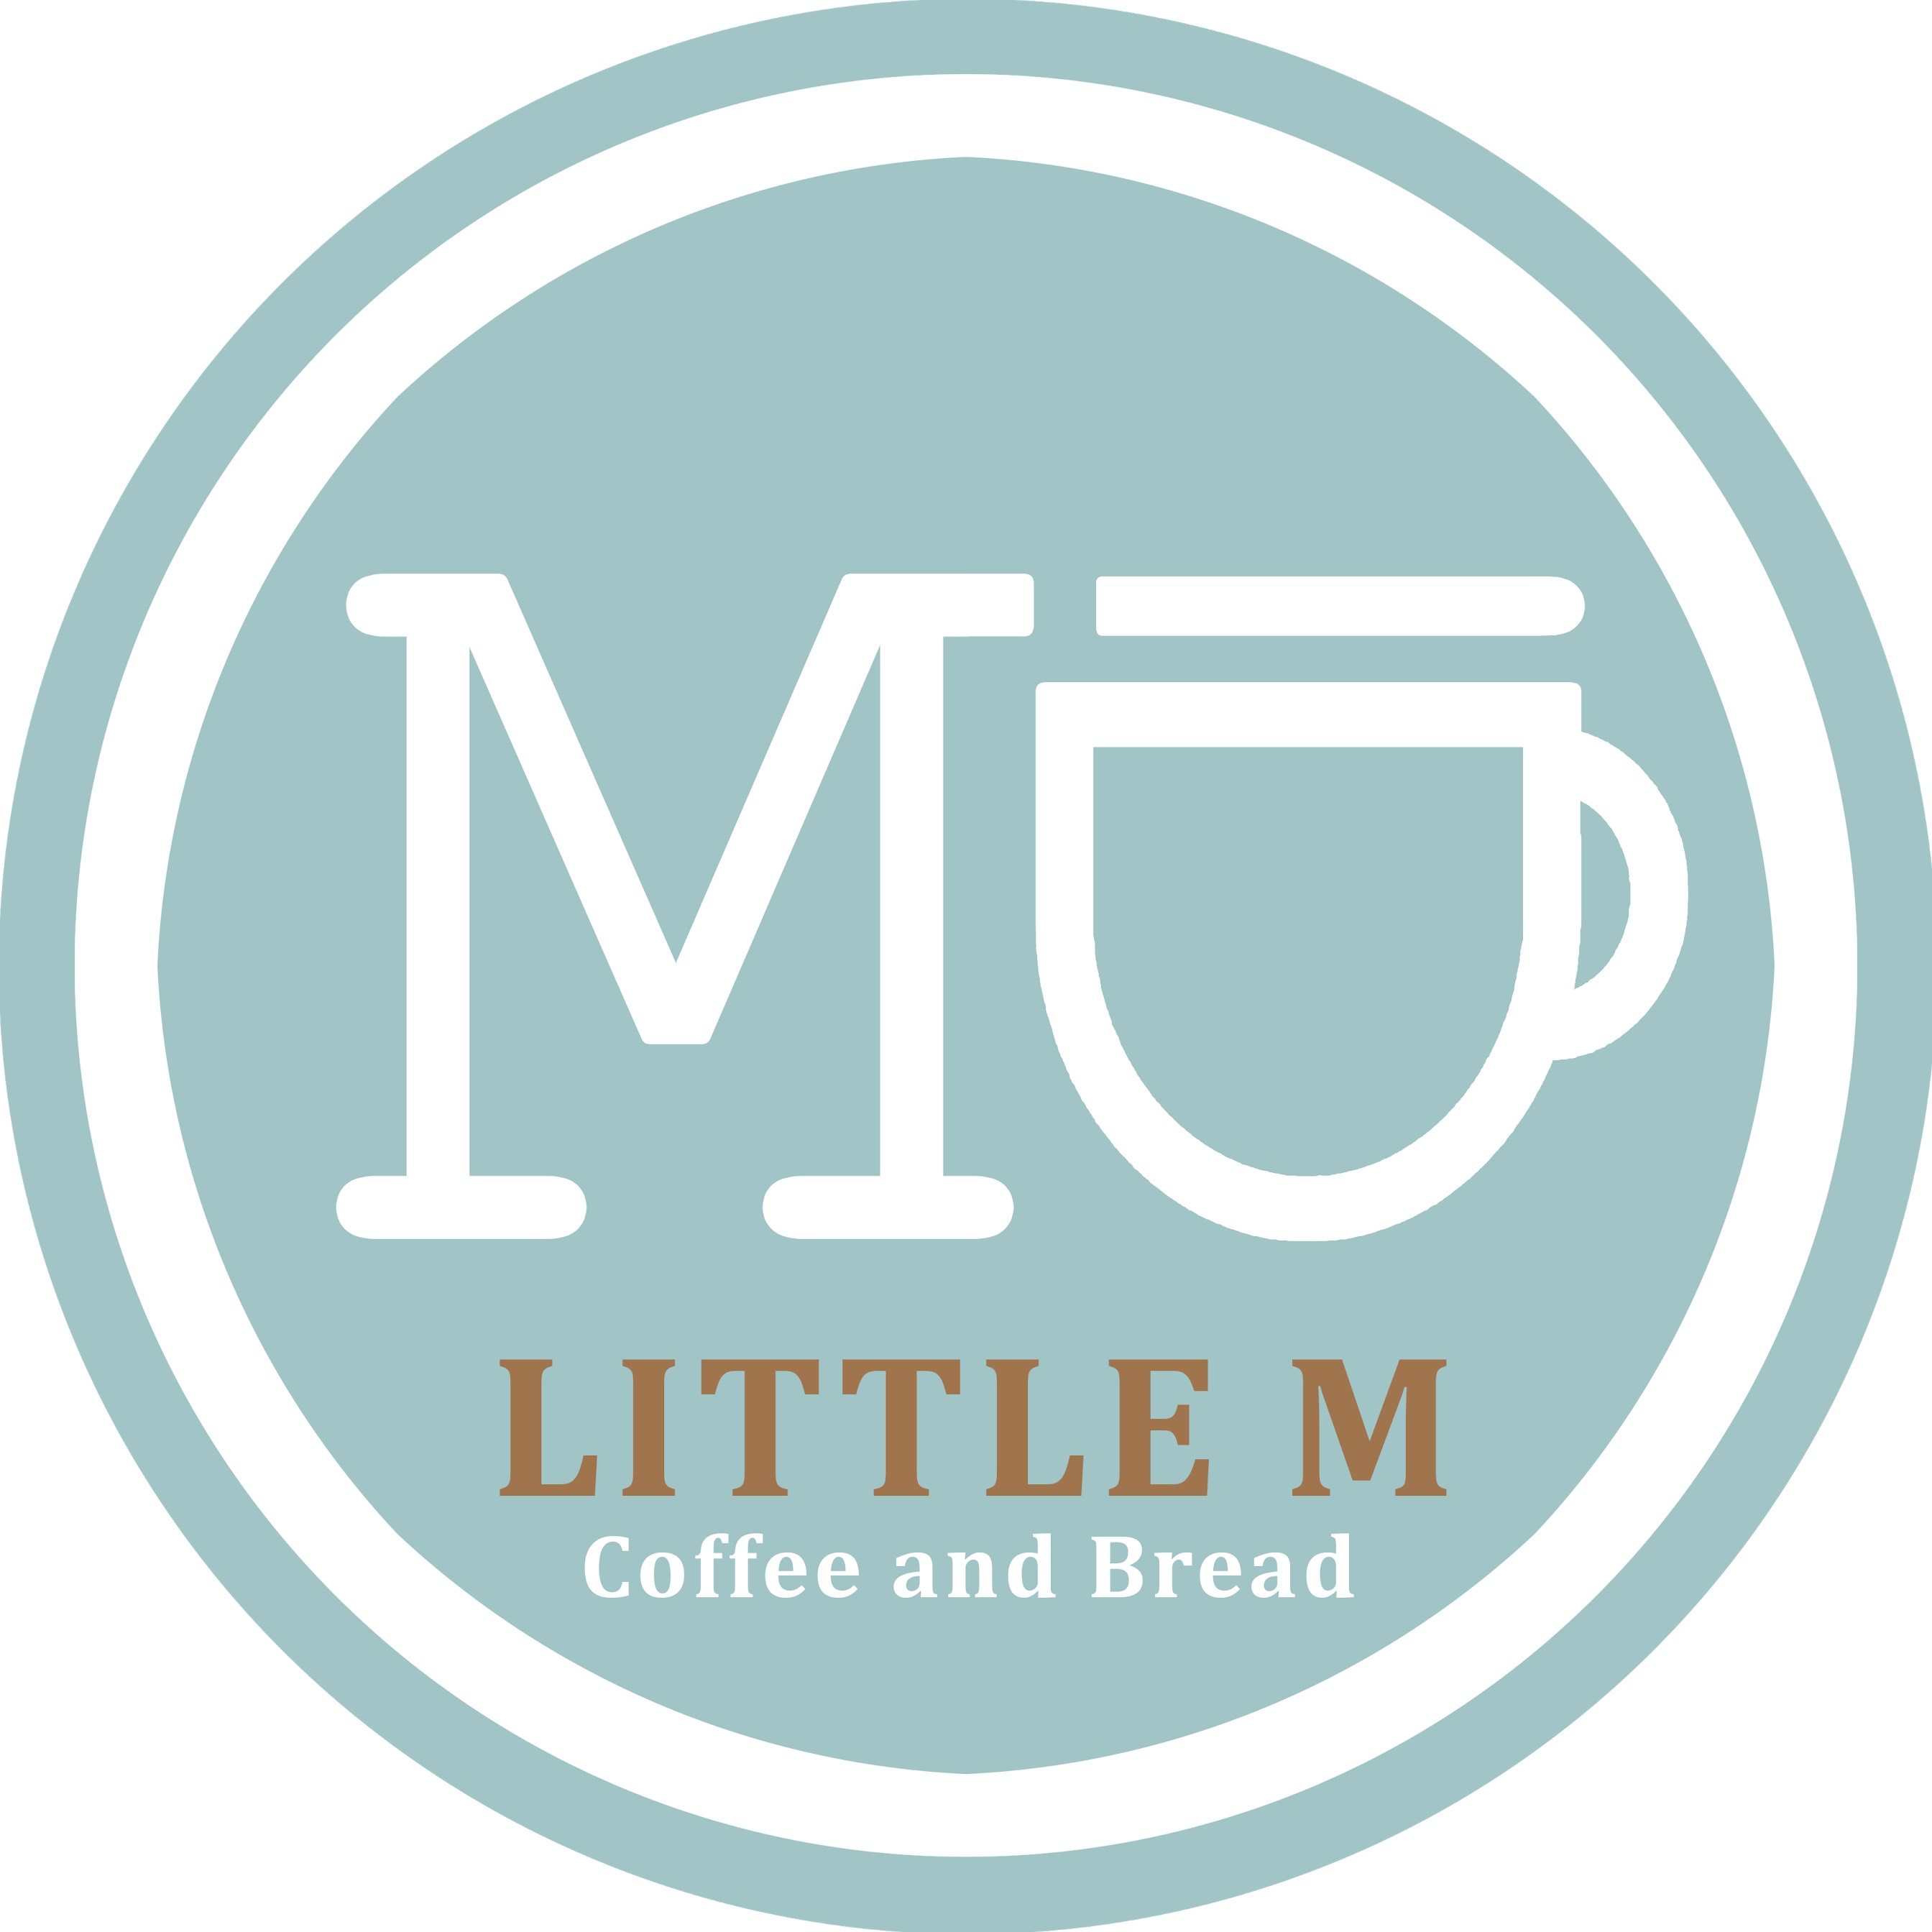 Little M Coffee